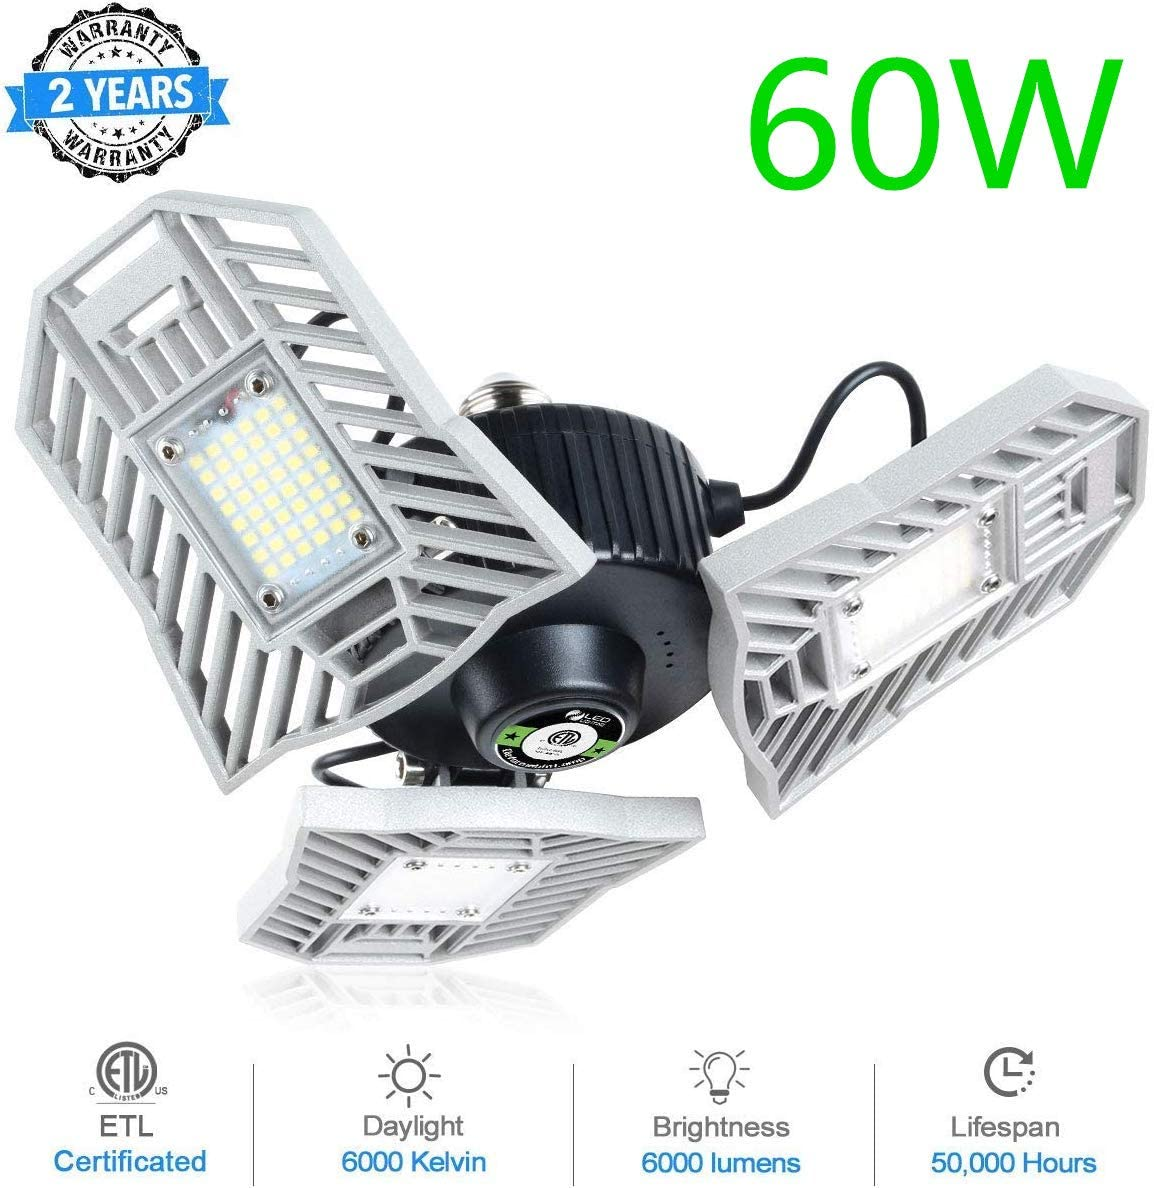 LED Garage Lights, 60W Deformable Garage High Ceiling Light – 6000LM 6000-6500K Motion Activated High Bay Floodlight for Garage Work Shop Basement Storage and Barn 1pack